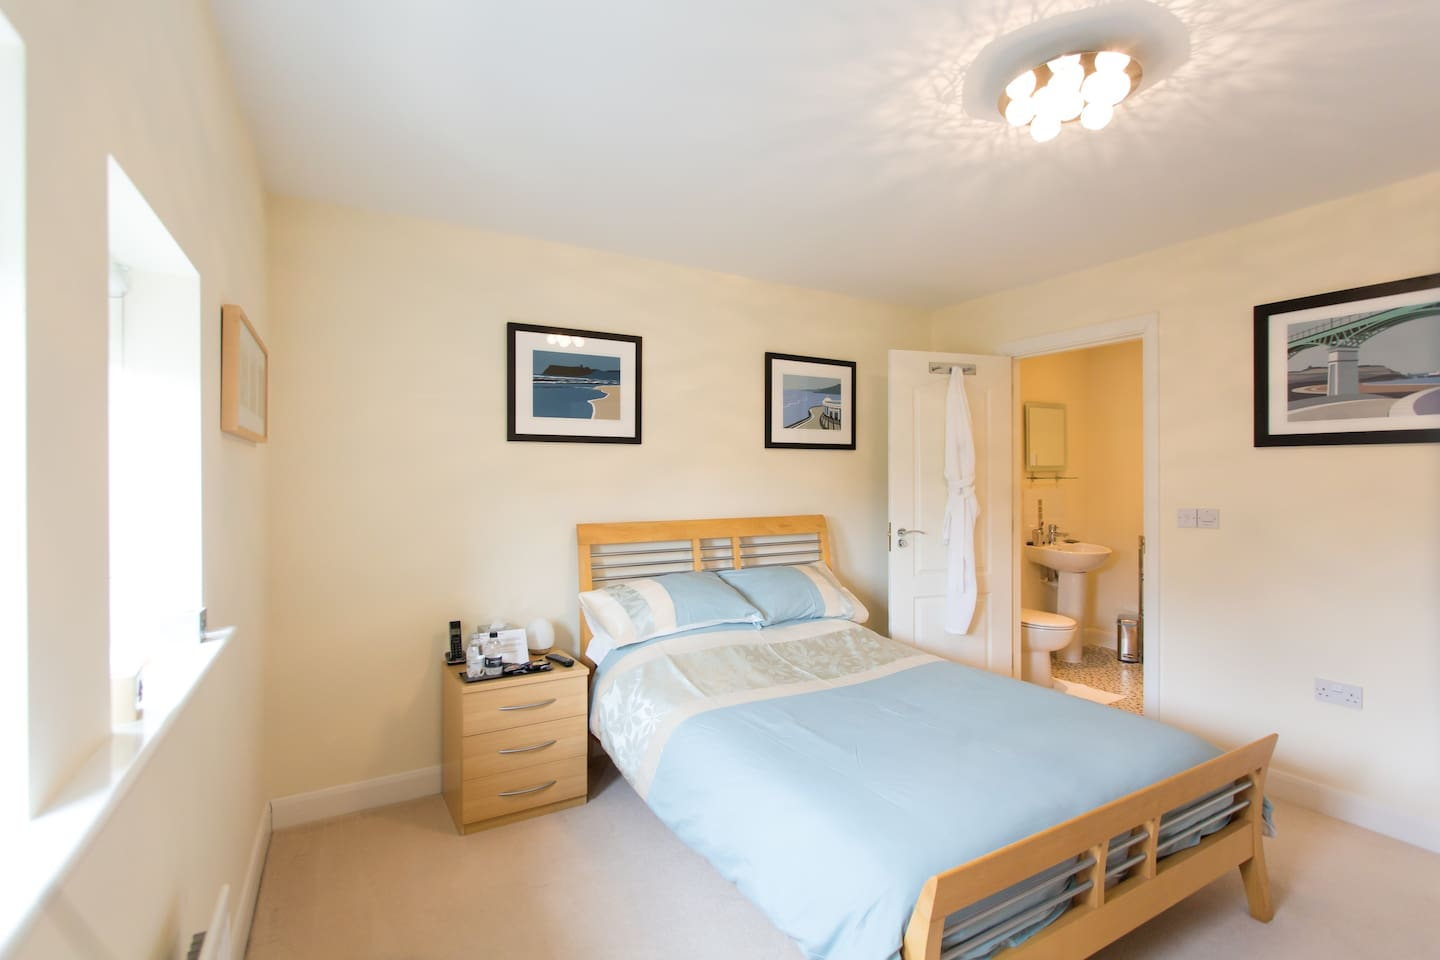 Larger than most Double en-suite light and airy double bedroom with oodles of thoughtful touches, inc modern wardrobe with mirror, chest of drawers, TV with integrated DVD player, writing desk and thoughtful guest touches to give you a memorable stay